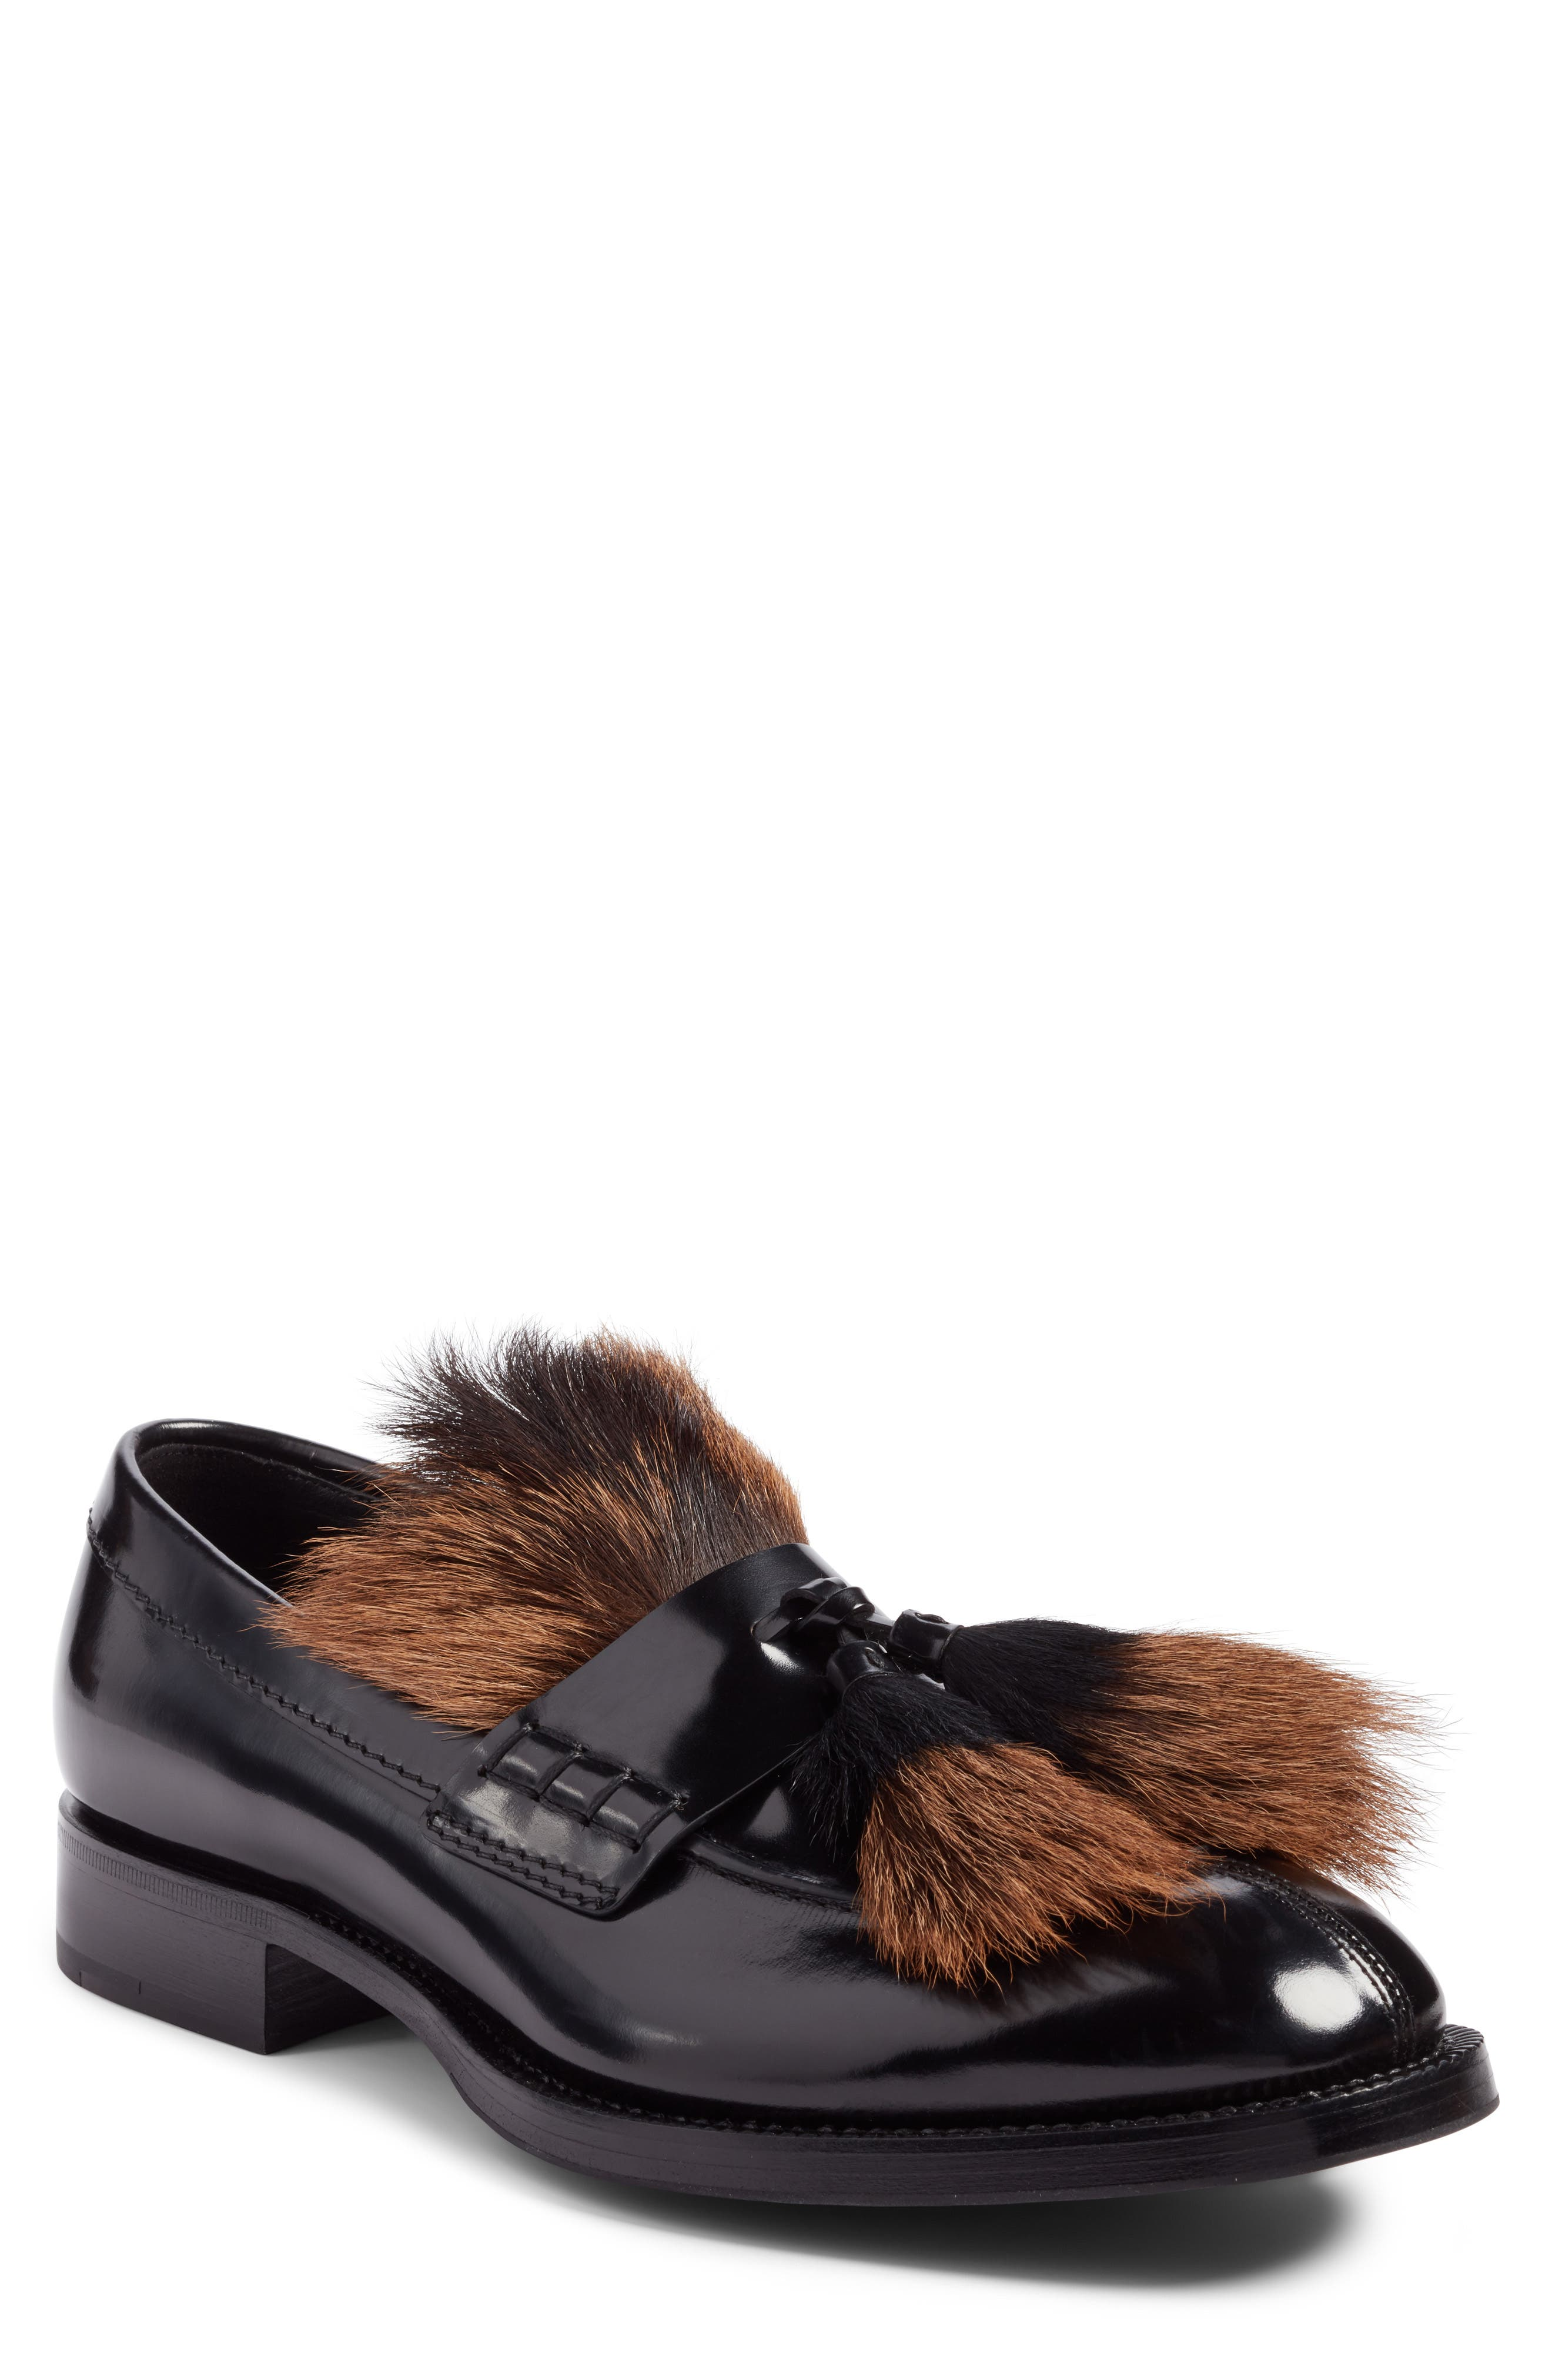 Tassel Loafer with Genuine Goat Hair Trim,                             Main thumbnail 1, color,                             001